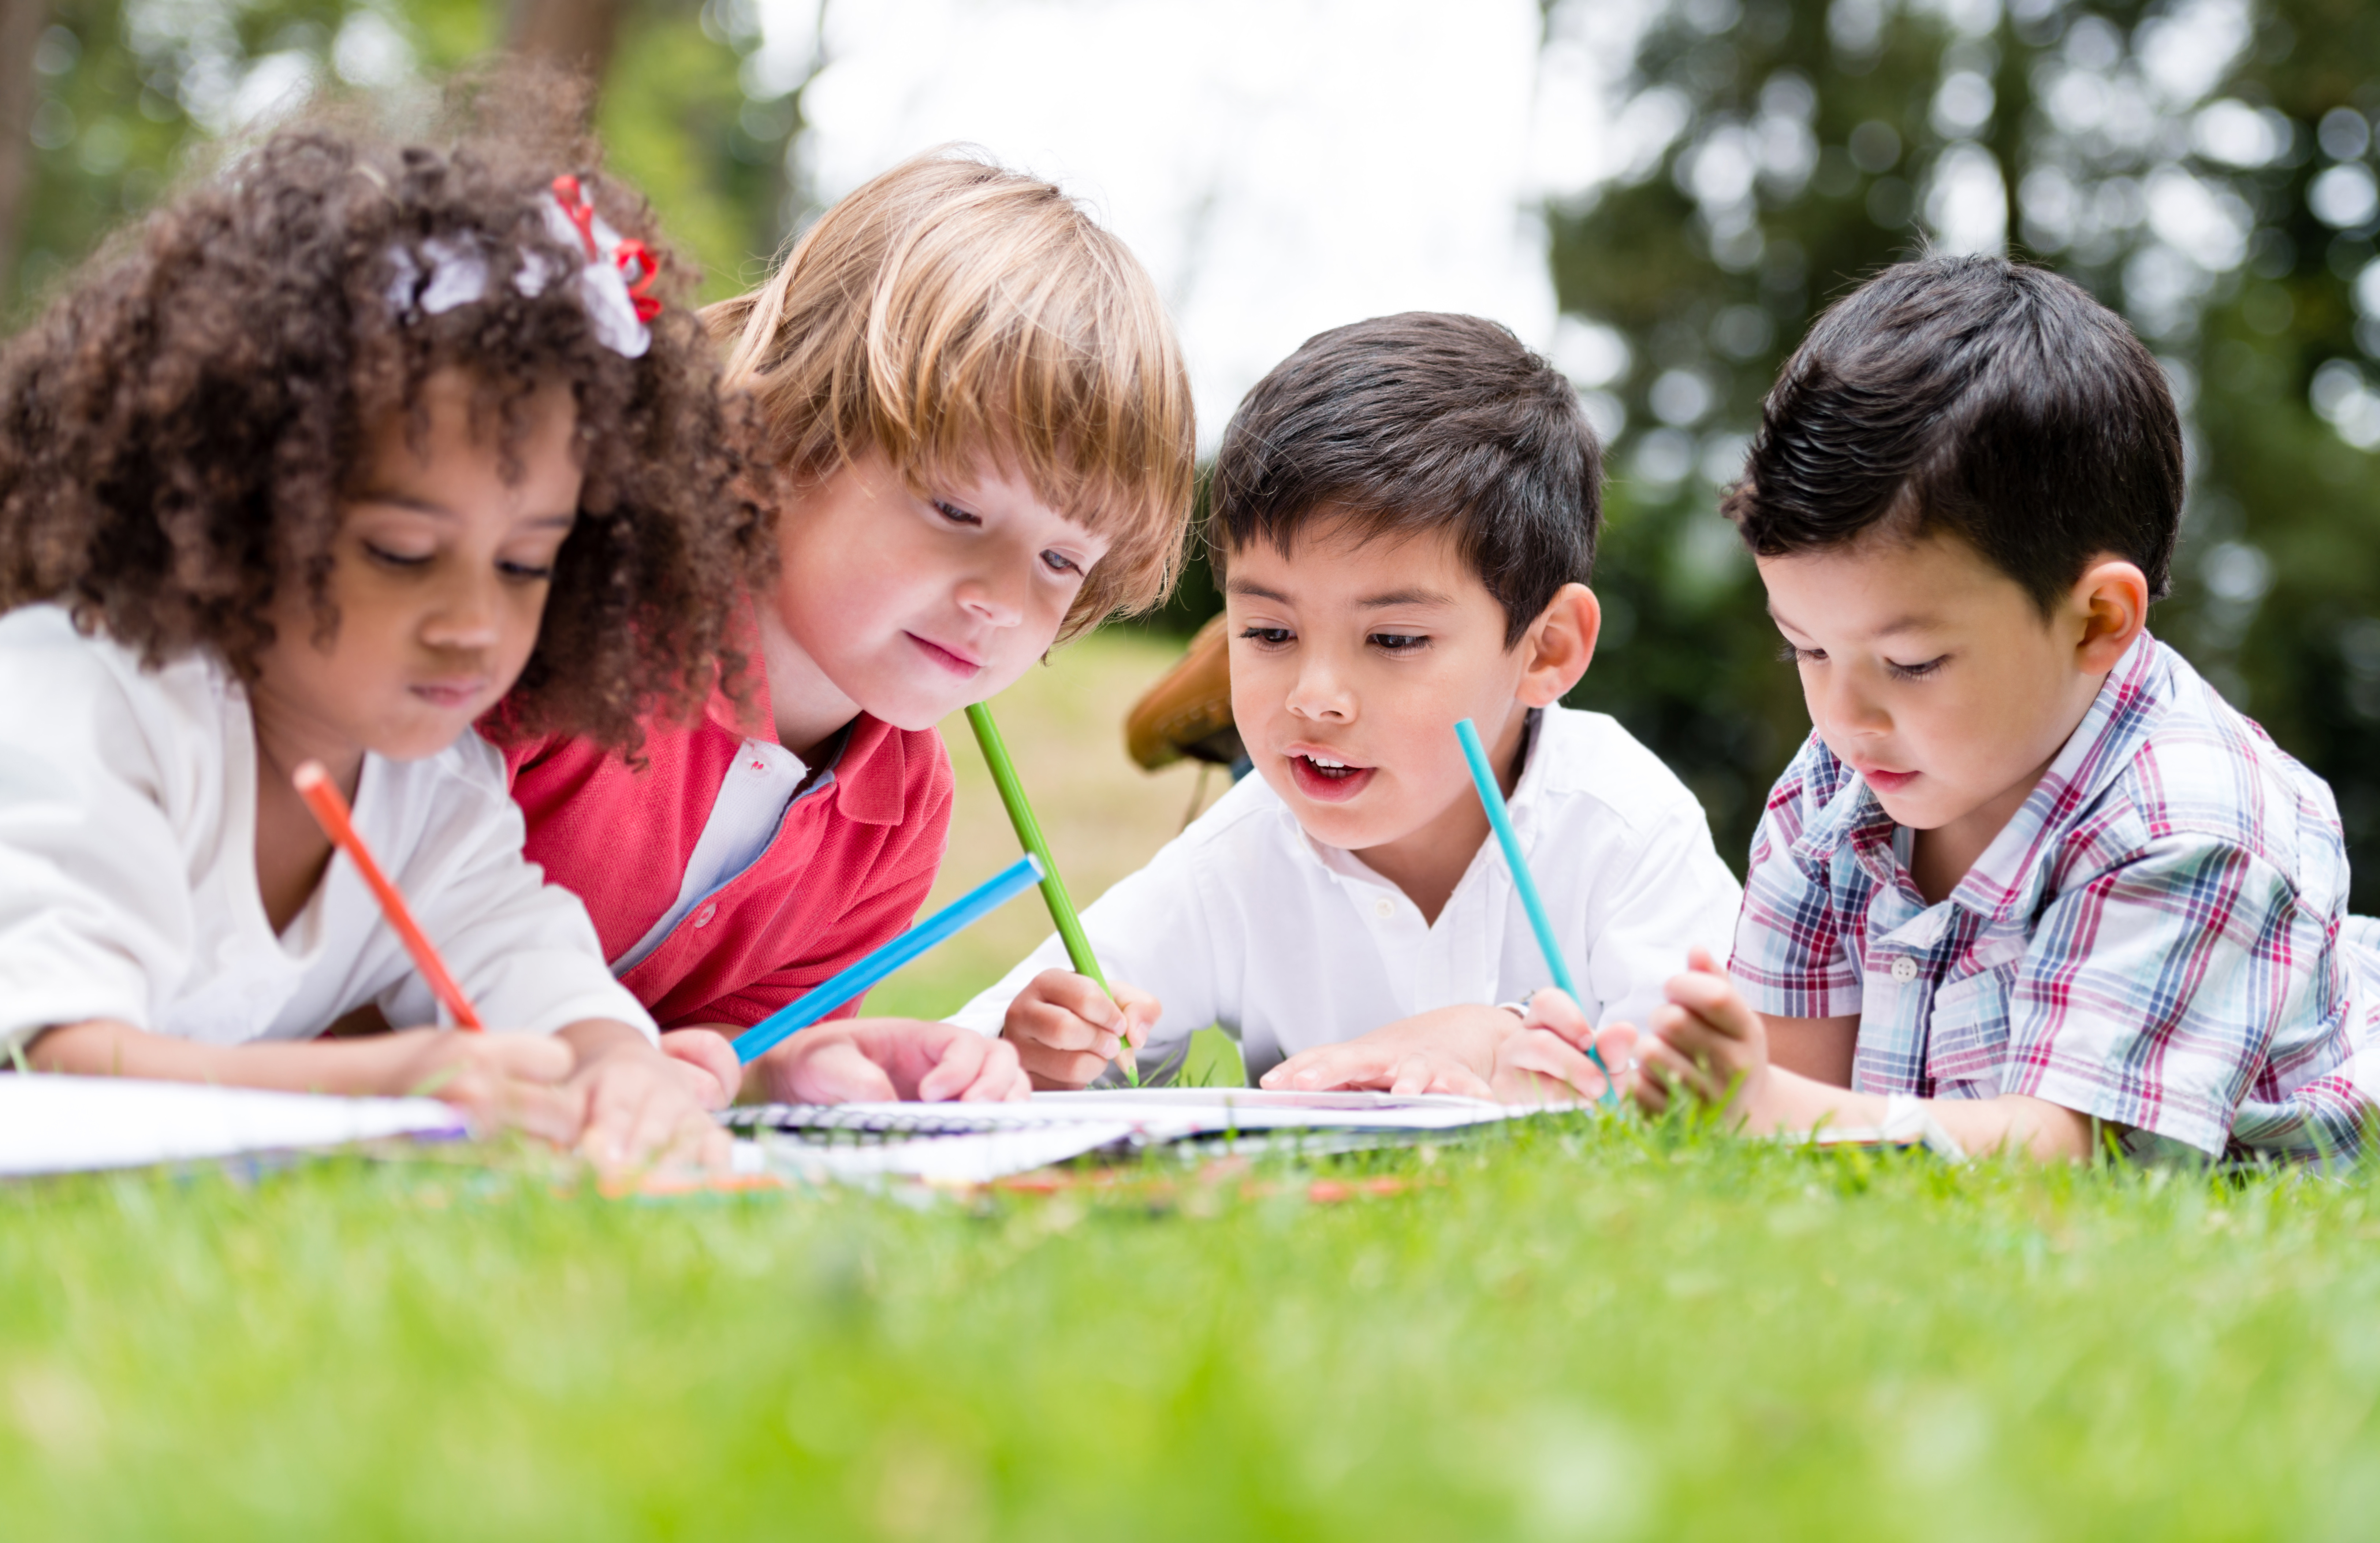 children coloring laying in the grass outside